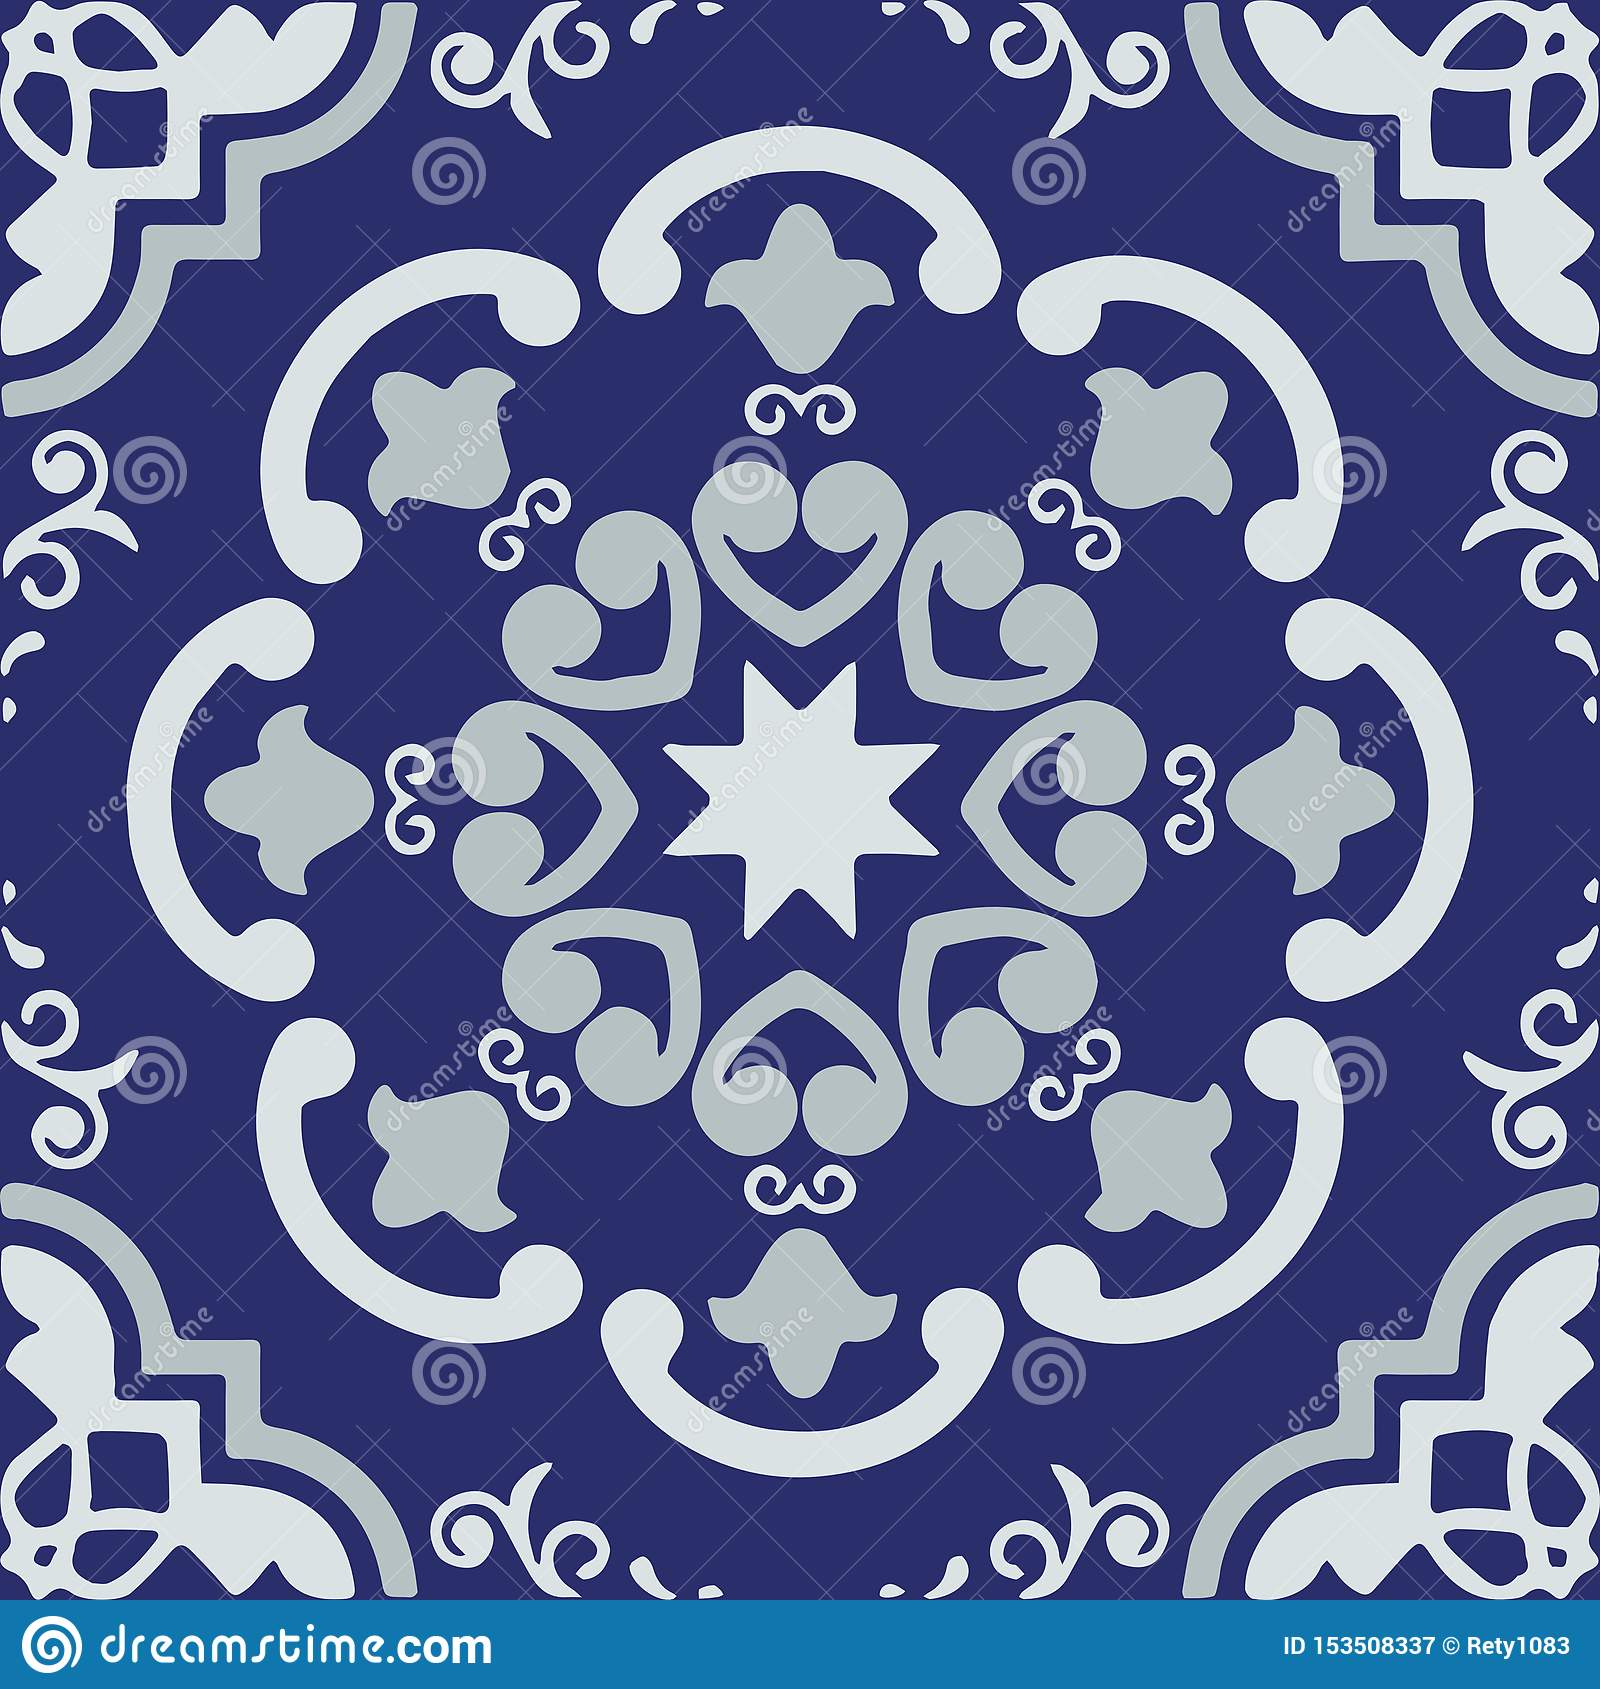 Ceramic Tile Portuguese Tiles Red And Blue Moroccan Tiles Blue And White Kitchen Tiles Bathroom Tiles Surface Pattern Vector Stock Illustration Illustration Of Moroccan Floor 153508337